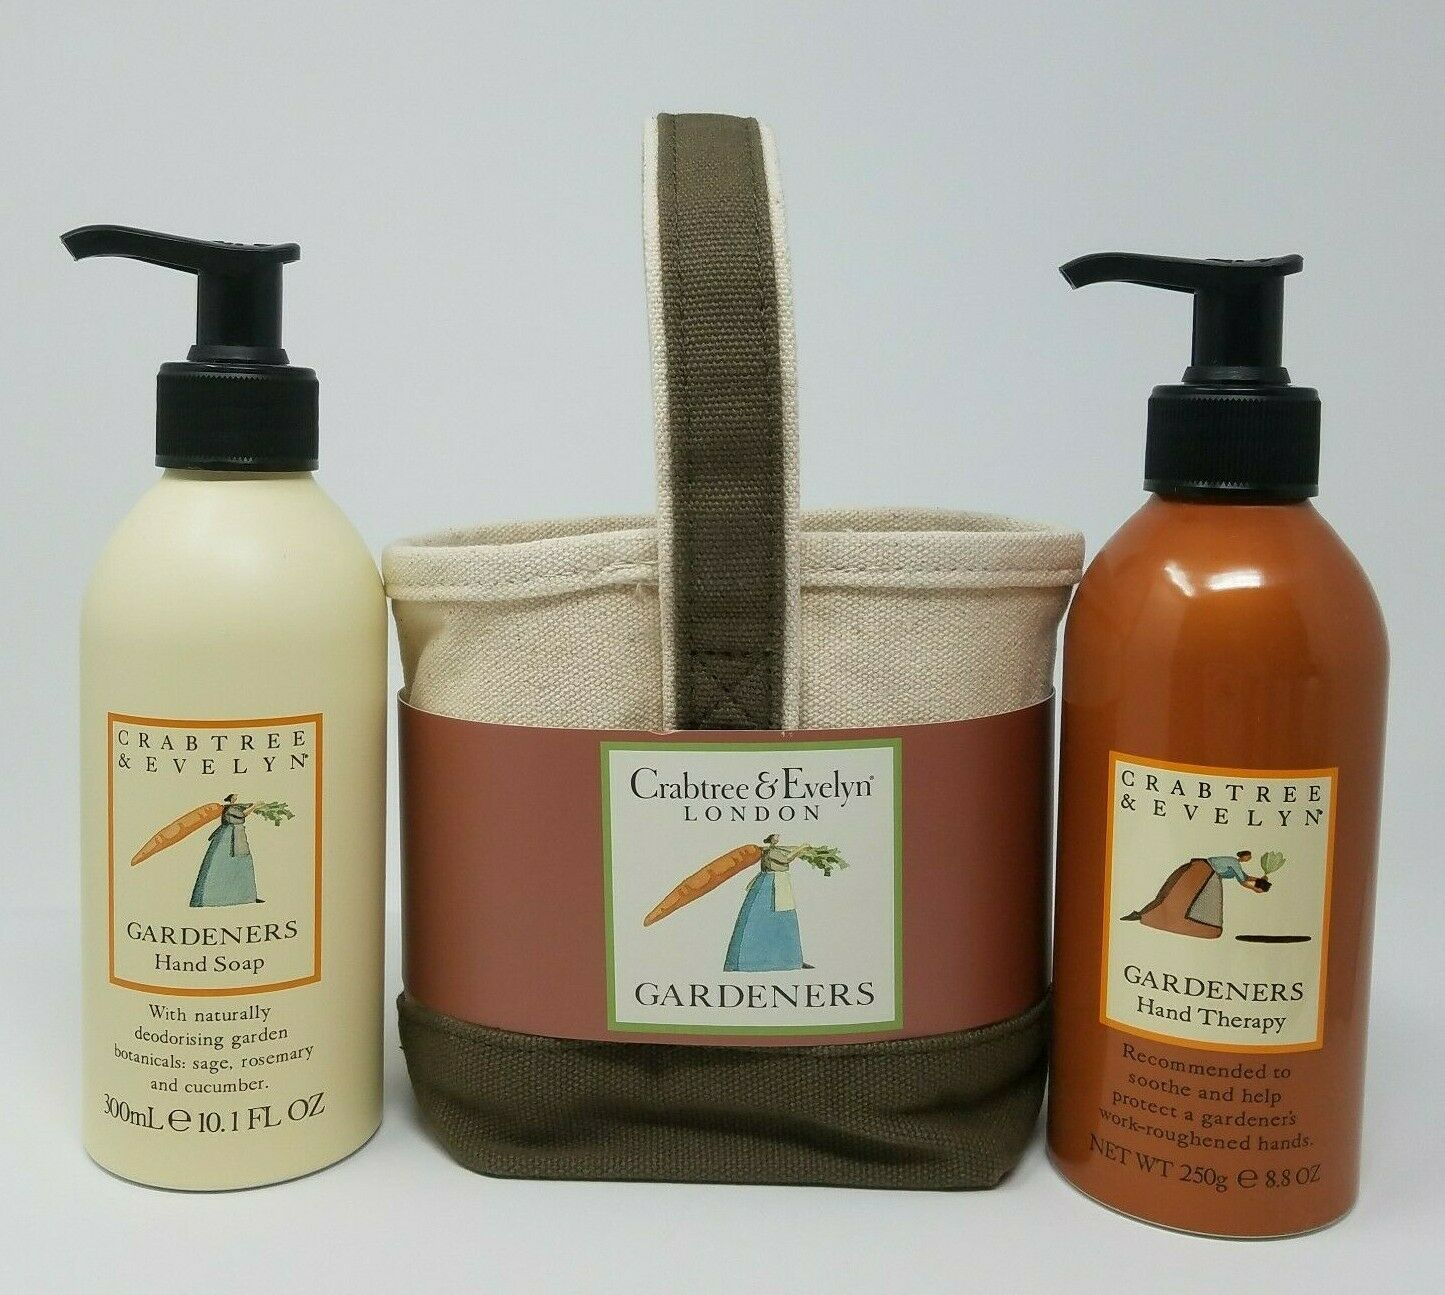 Crabtree & Evelyn Gardeners Hand Soap & Hand Therapy Duo  - $169.99